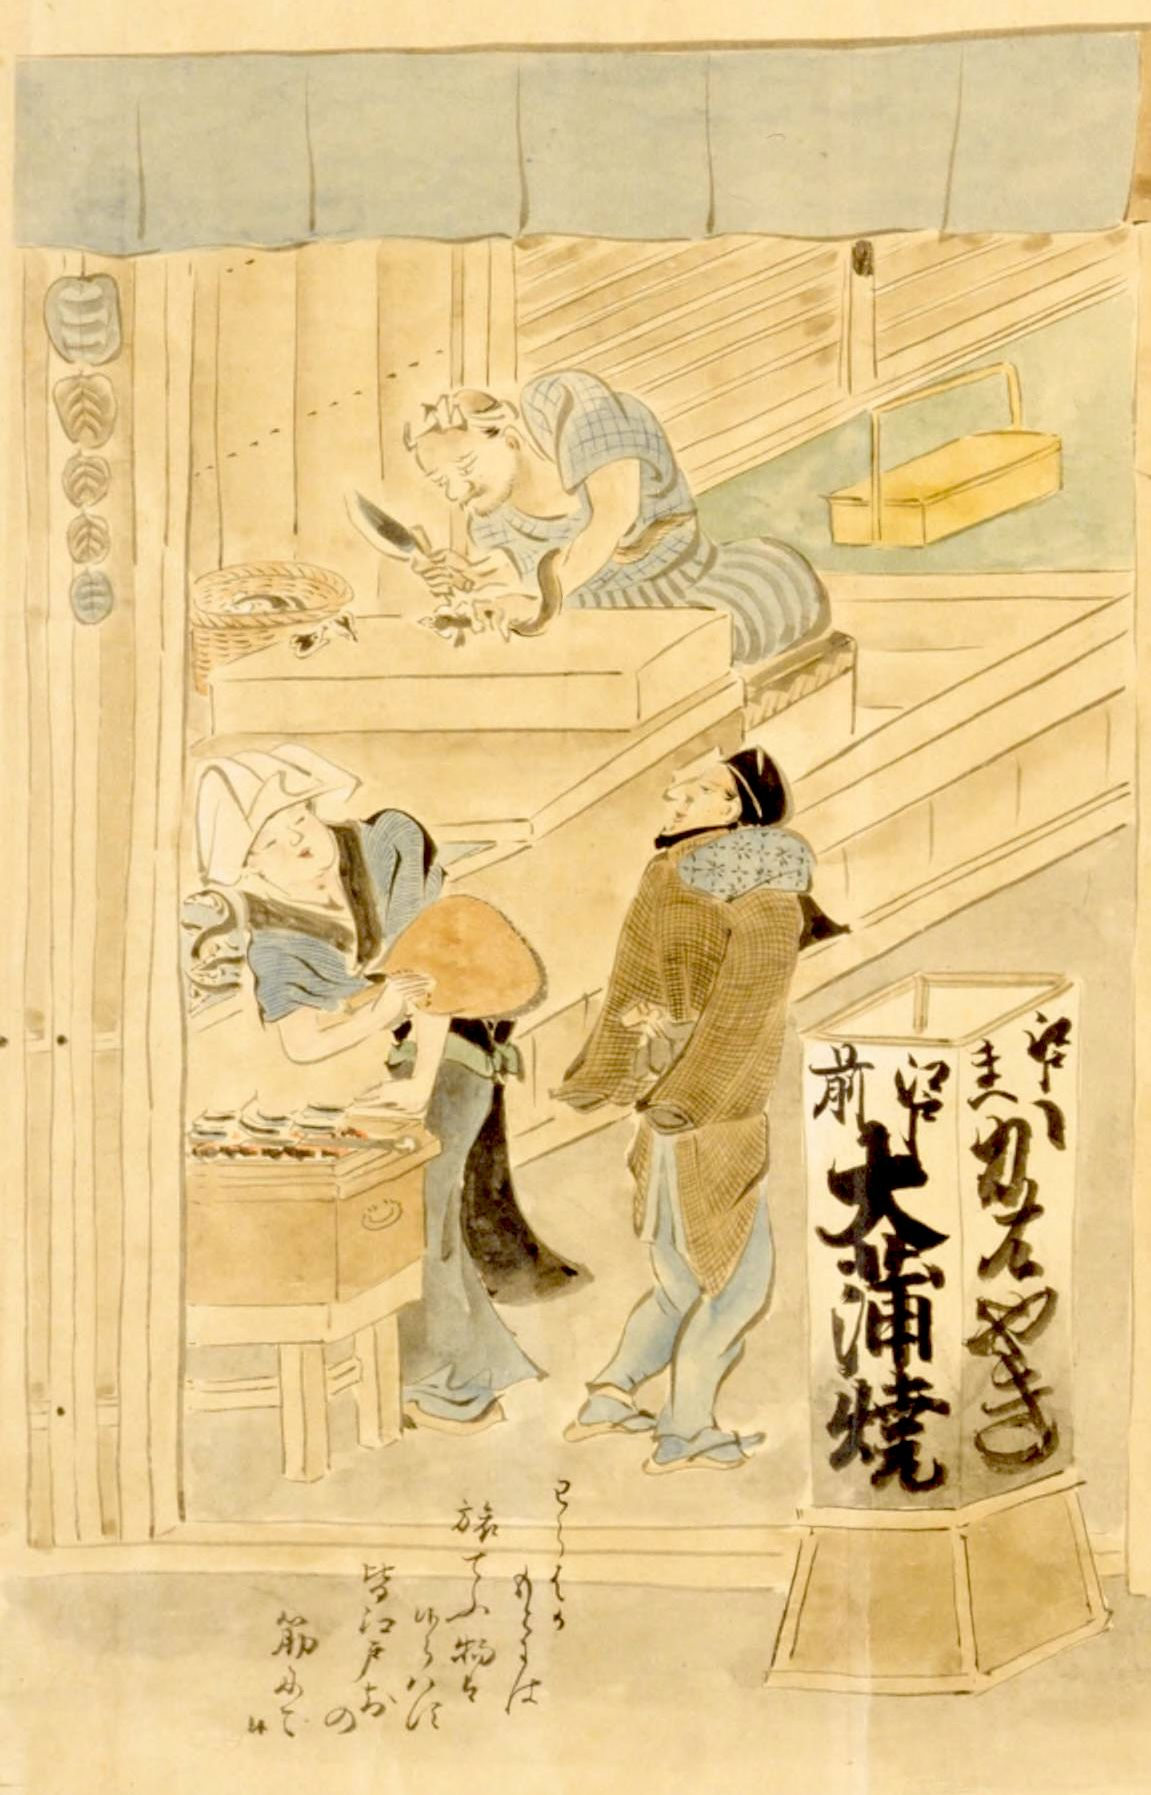 Many visitors to Edo would make sure to try the local eel. From Shokunin-zukushi ekotoba (Illustrated Story of Craftsmen). (Courtesy the National Diet Library)